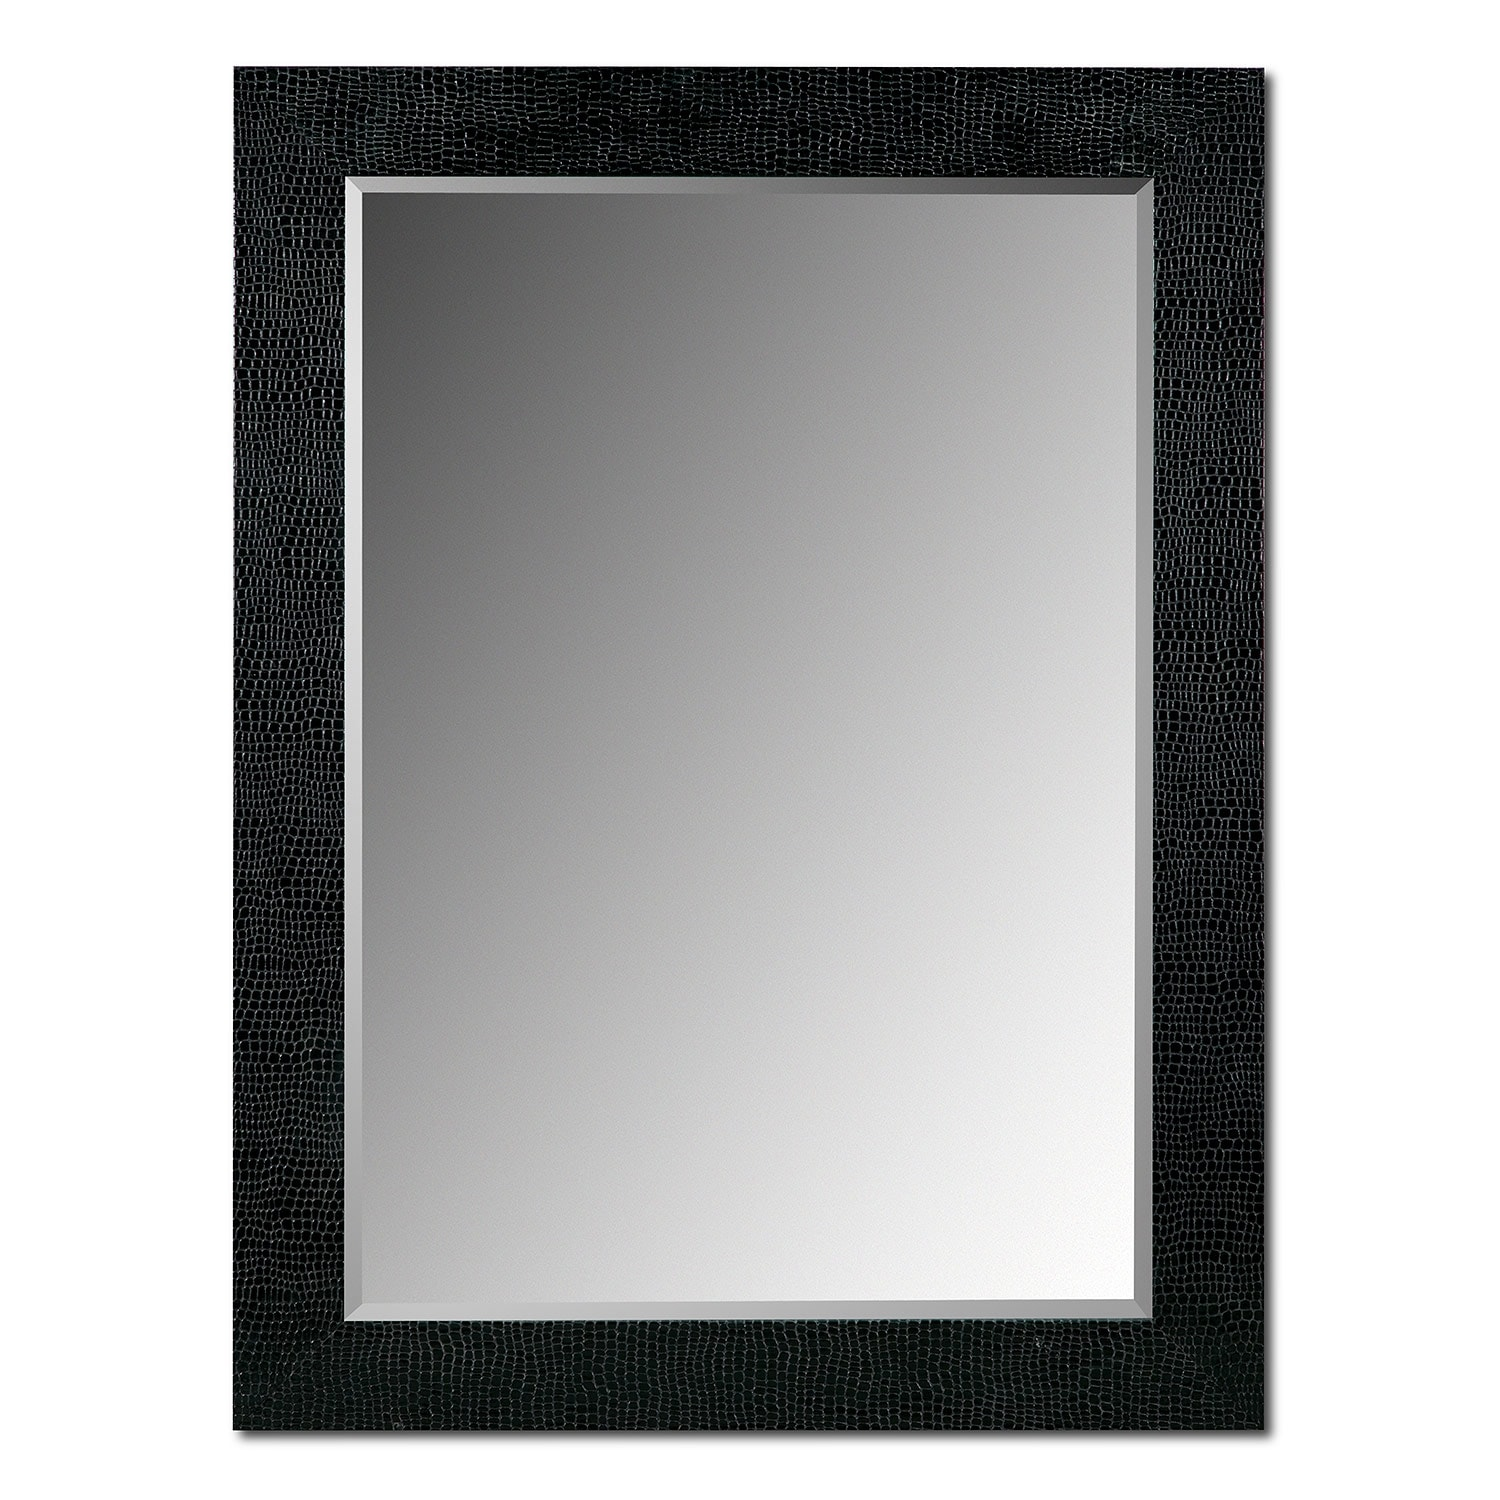 croc mirror black - Mirror With Black Frame